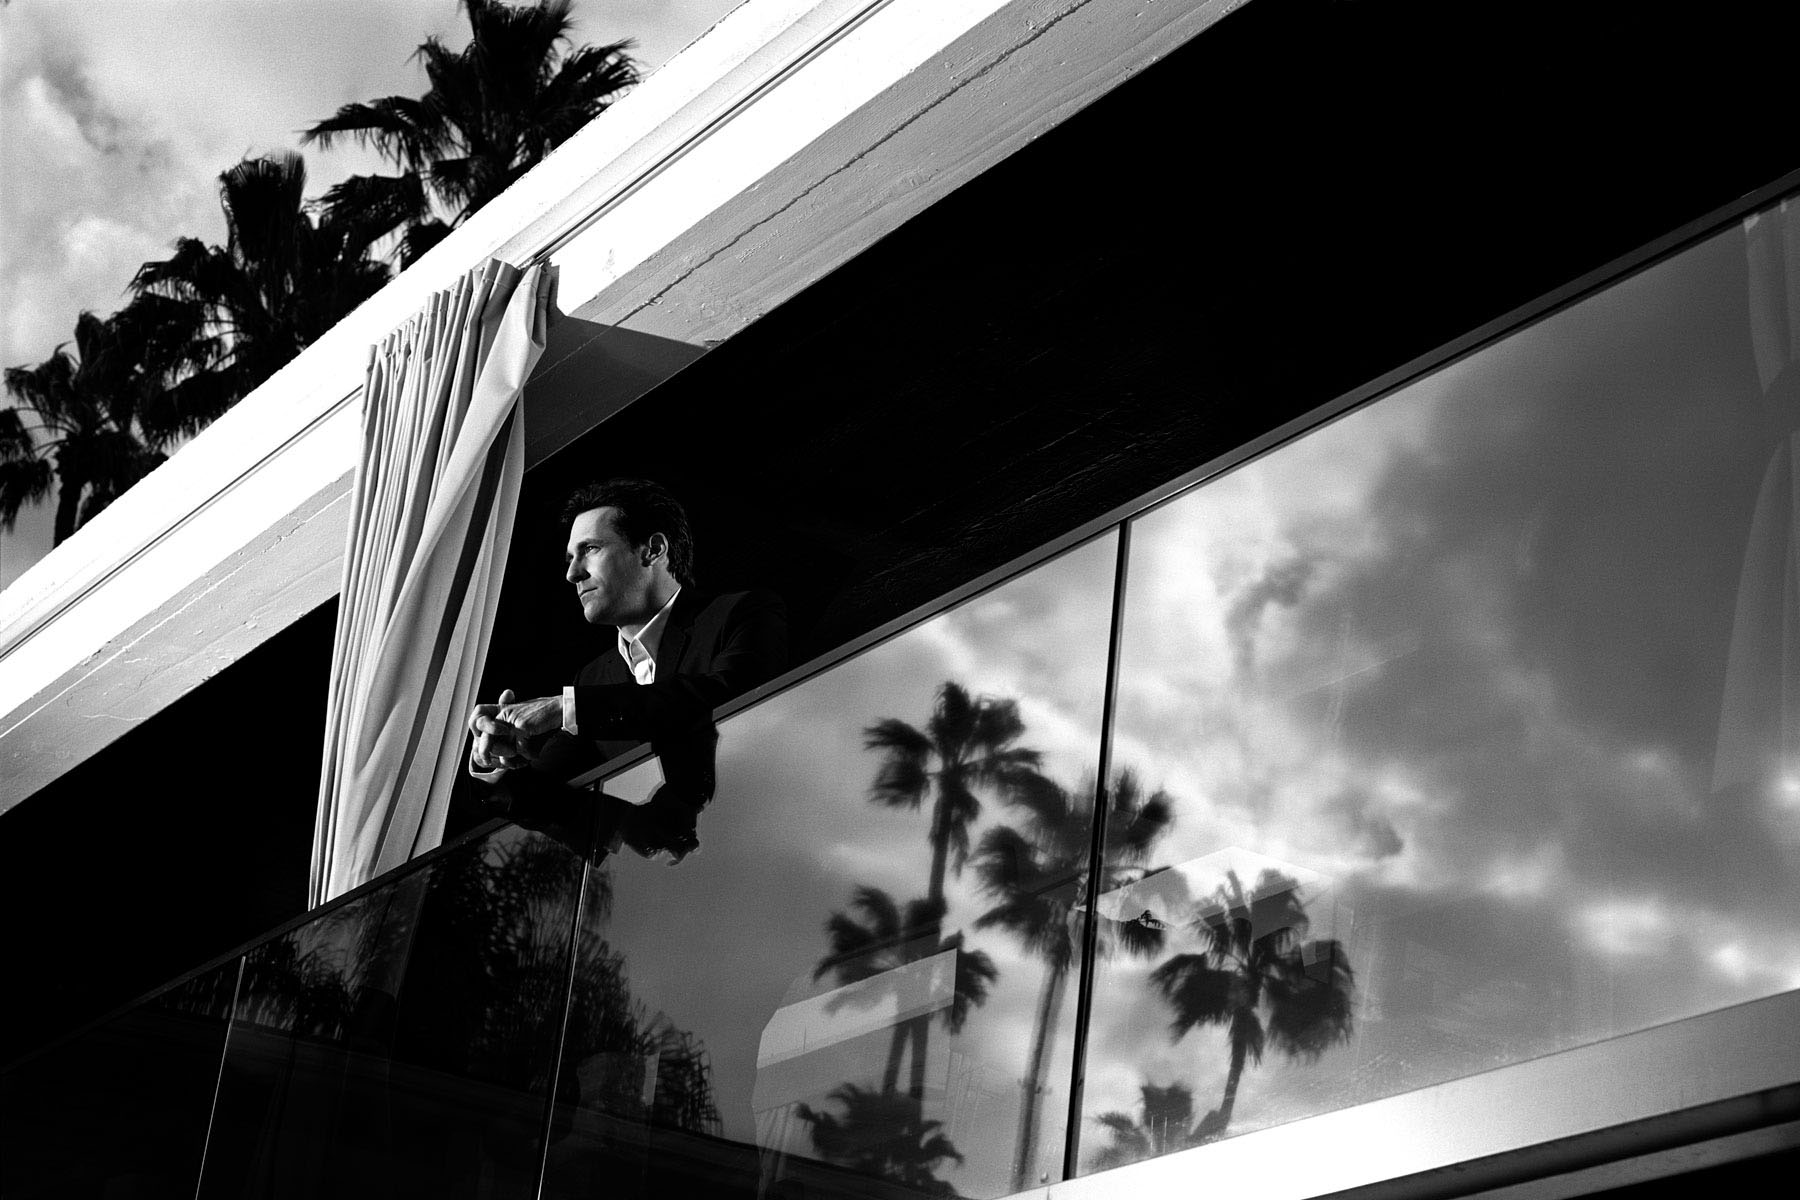 Actor Jon Hamm photographed by Scott Council